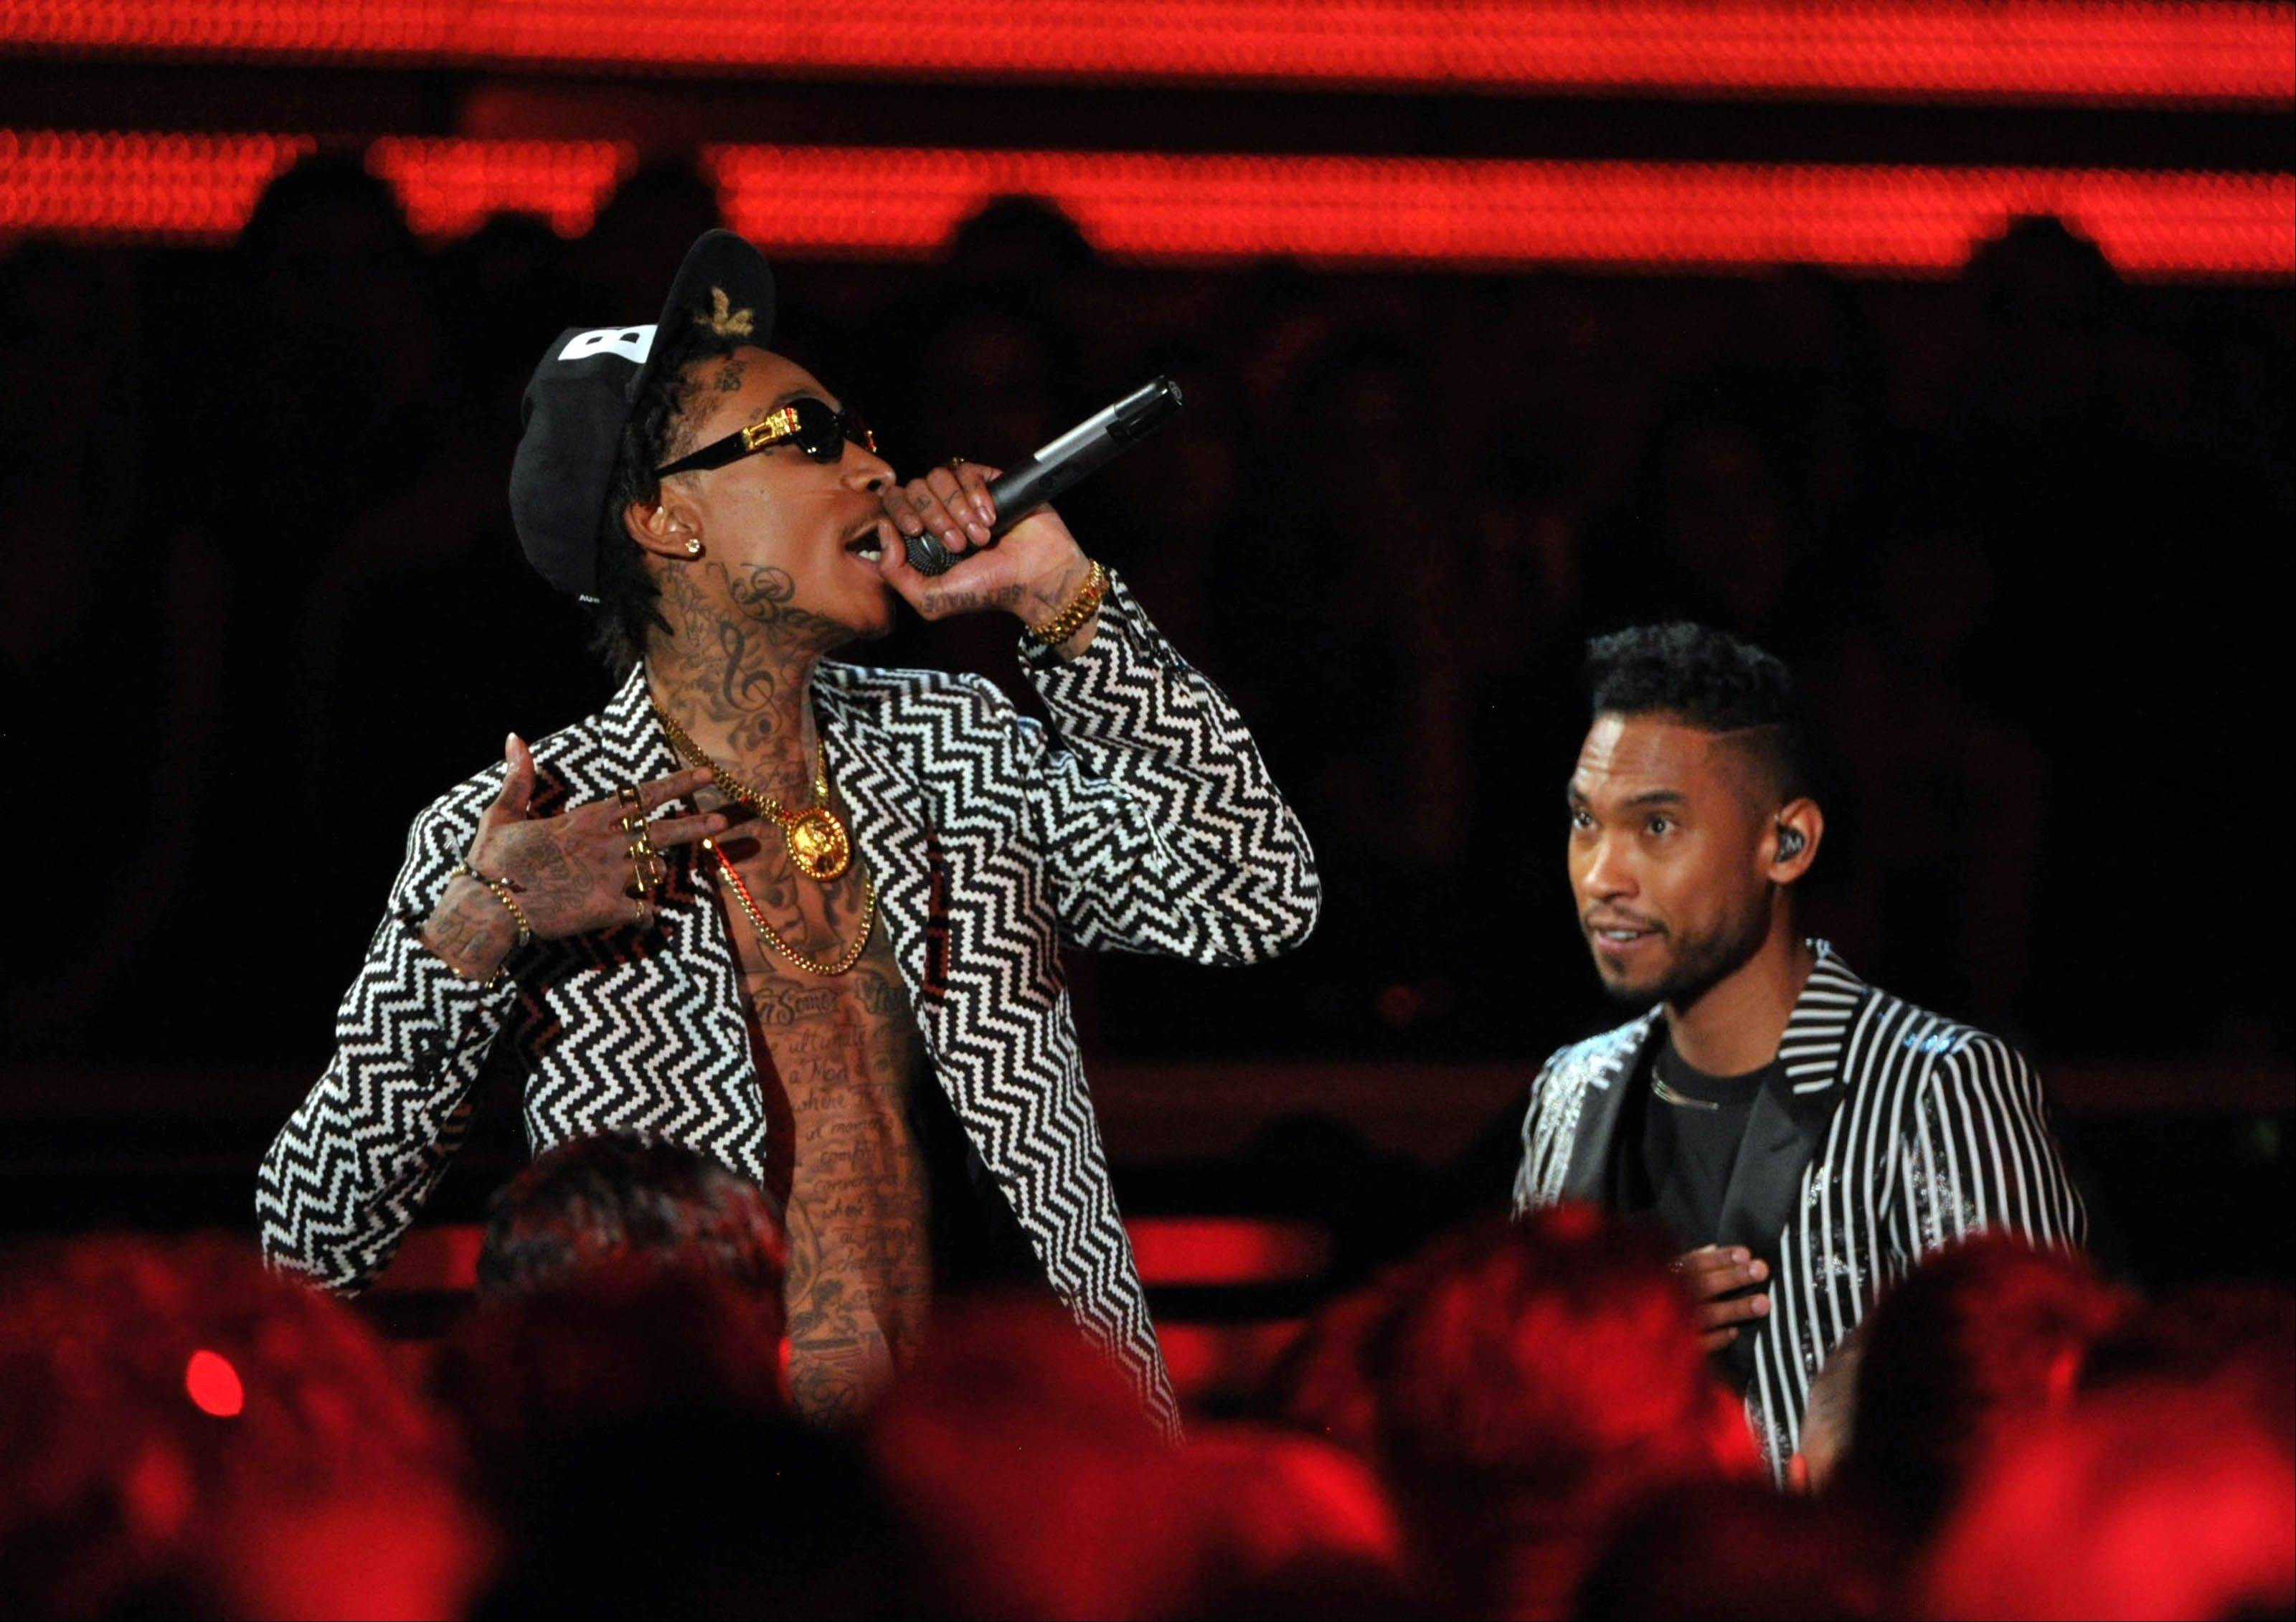 Musicians Wiz Khalifa, left, and Miguel perform at the 55th annual Grammy Awards on Sunday, Feb. 10, 2013, in Los Angeles.